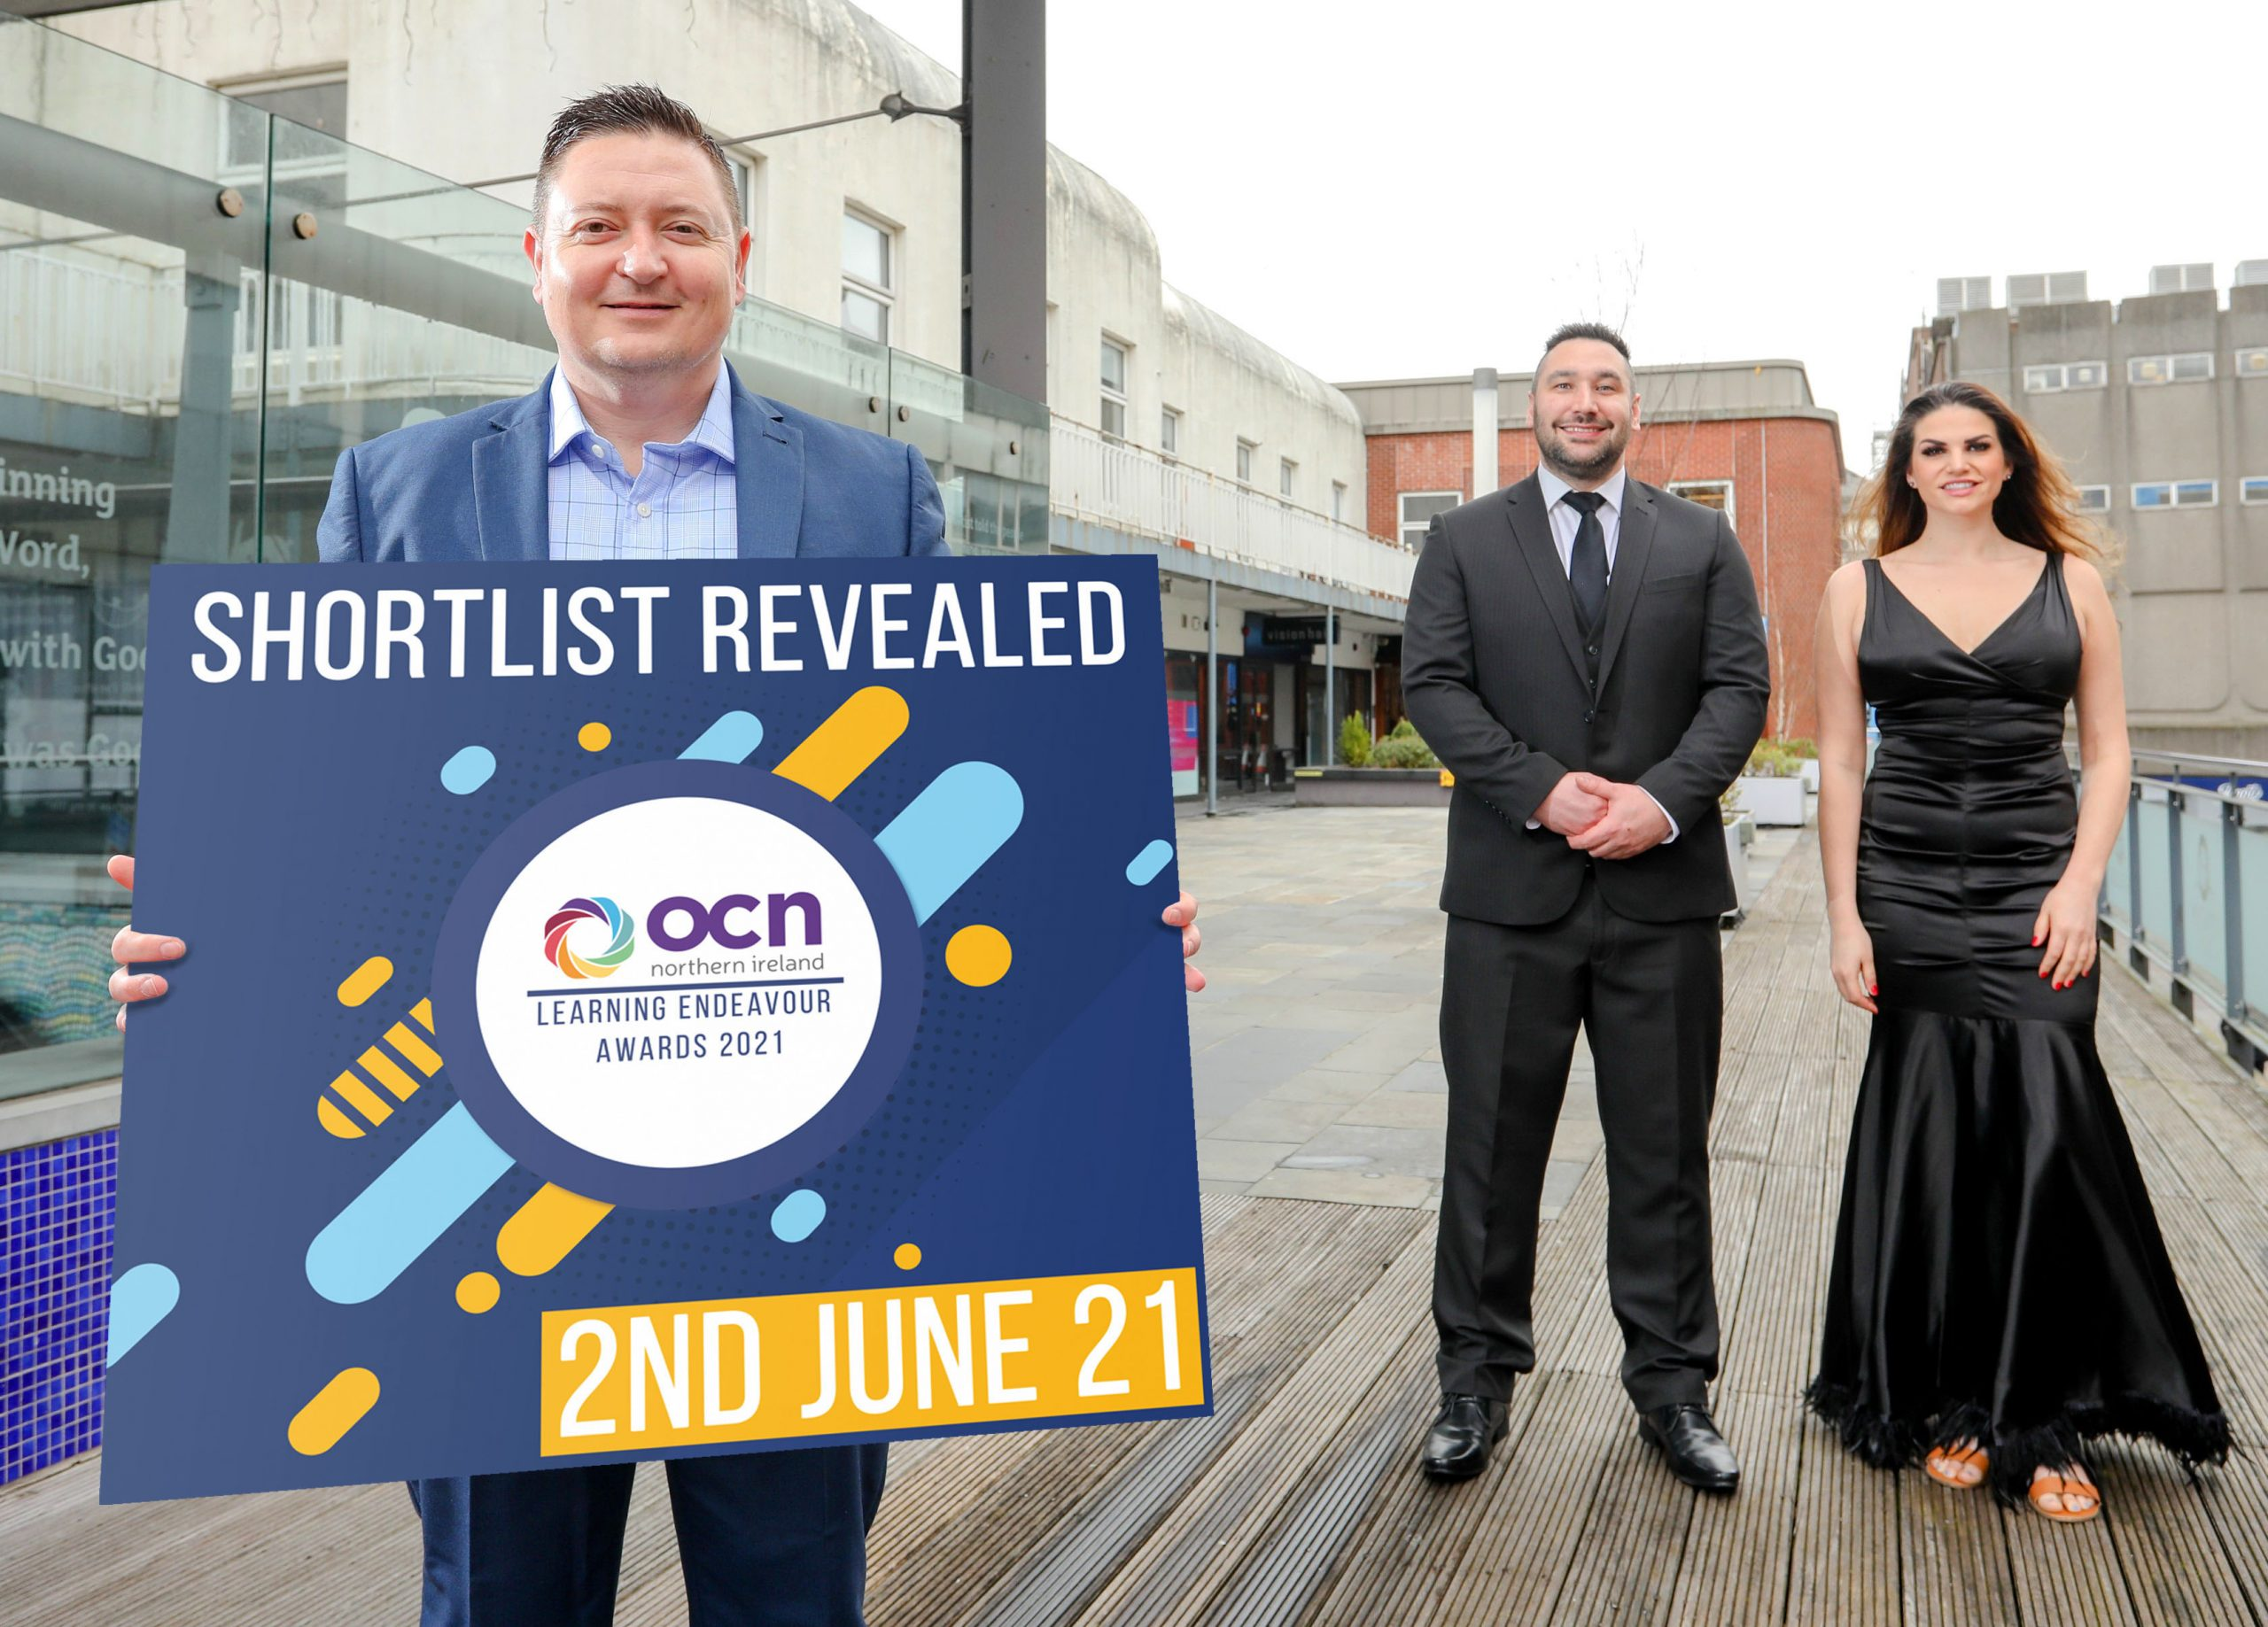 SHORTLIST ANNOUNCED - Radio presenters, Jordan Humphries and Steve Turnbull, join the Open College Network NI (OCN NI), CEO, Martin Flynn, to announce the shortlist for this year's annual Learning Endeavour Awards. OCN NI is an educational charity and awarding body that advances education by developing qualifications for adults and young people throughout NI. The awards shortlist includes nominees from all over Northern Ireland and covers categories such as Third Sector Learner of the Year, FE Learner of the Year, Schools Learner of the Year and Inspiring Tutor/Teacher of the Year. A new category for 2021, Advancing Learning Through Innovation, was added to recognise how organisations have transformed the delivery of qualifications throughout the Covid-19 pandemic. For more information visit https://www.ocnni.org.uk/learner-awards-2021/.